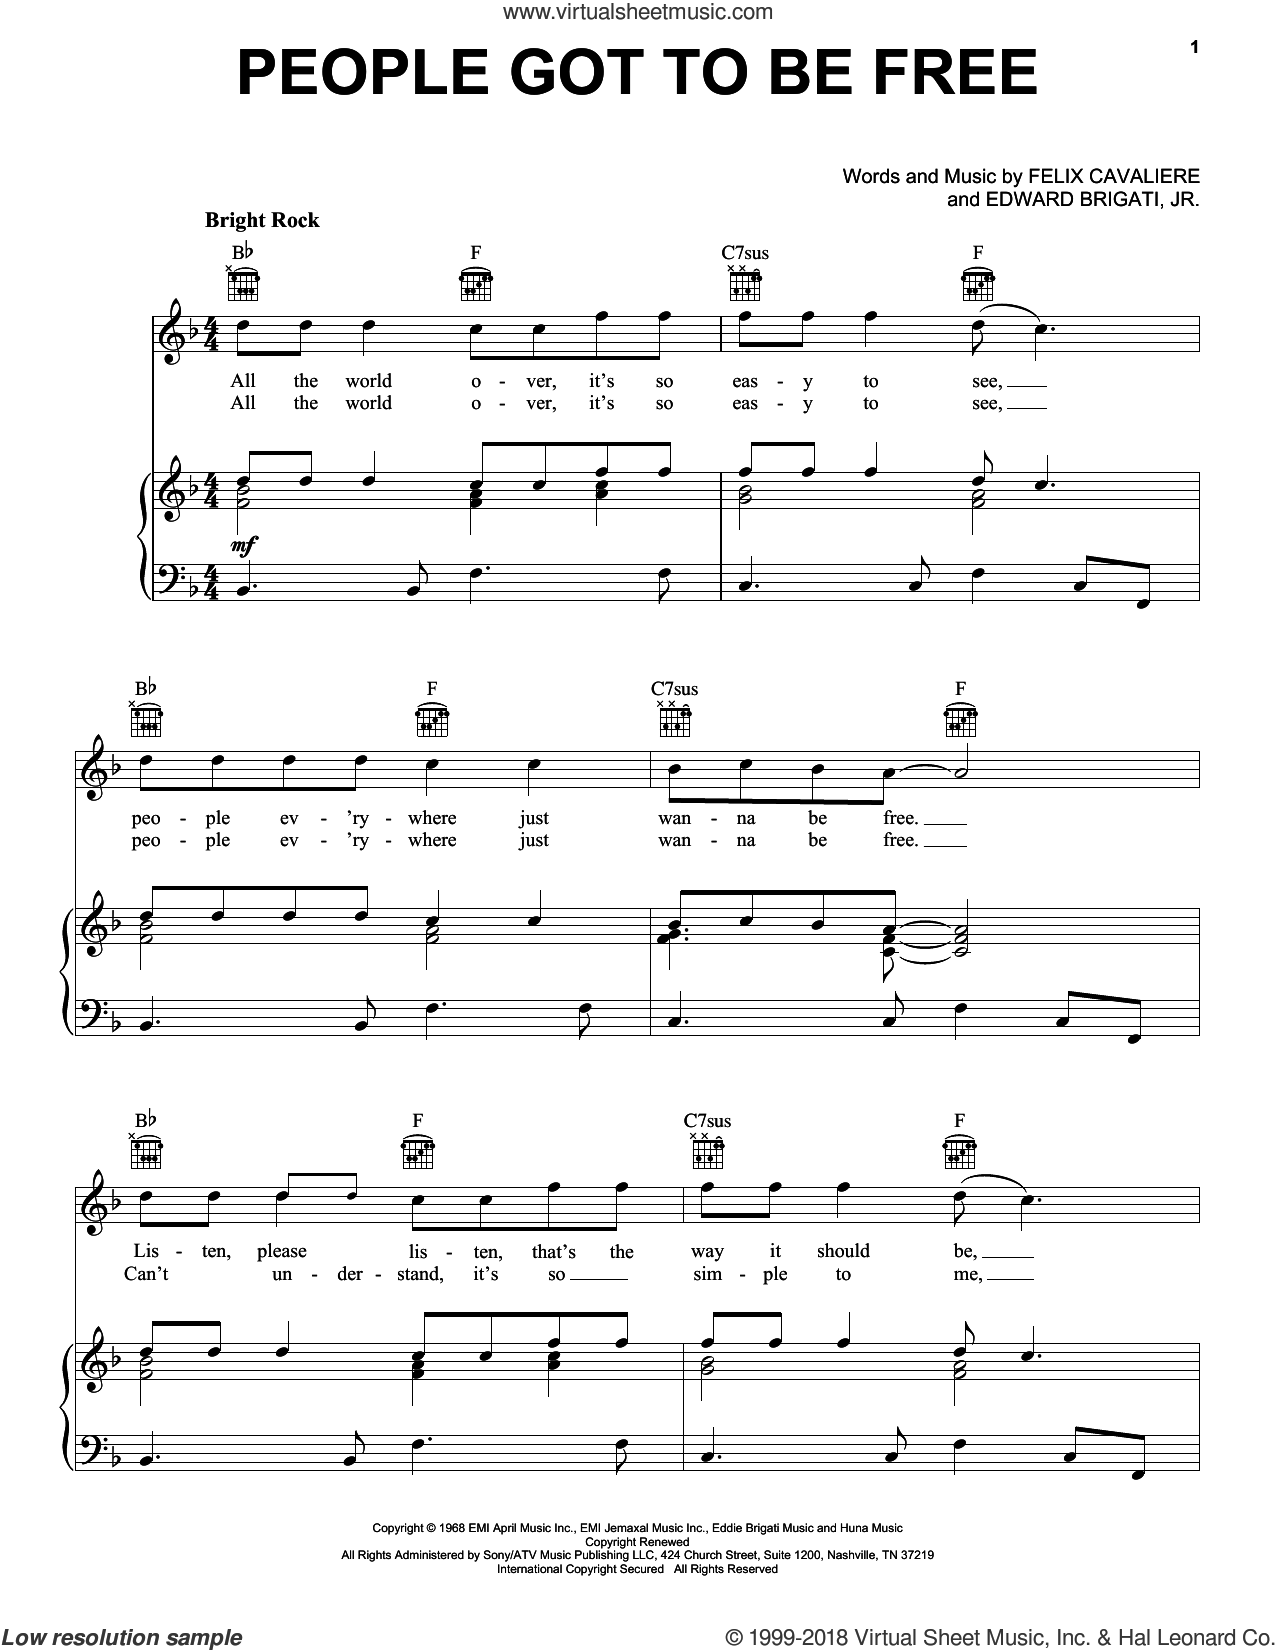 People Got To Be Free sheet music for voice, piano or guitar by Felix Cavaliere, The Rascals and Edward Brigati Jr.. Score Image Preview.